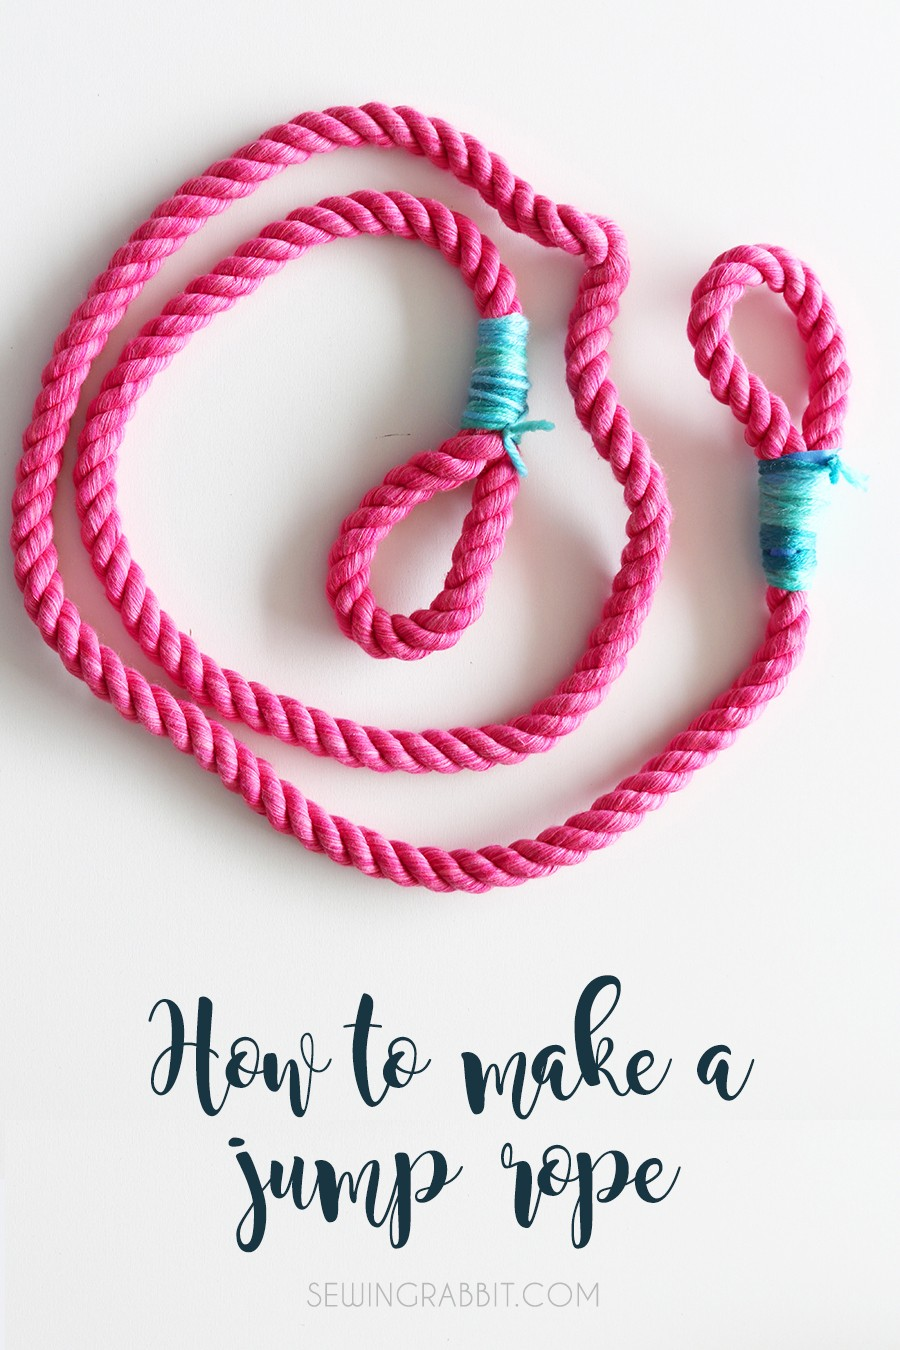 make a cute jump rope this Summer for your kids!